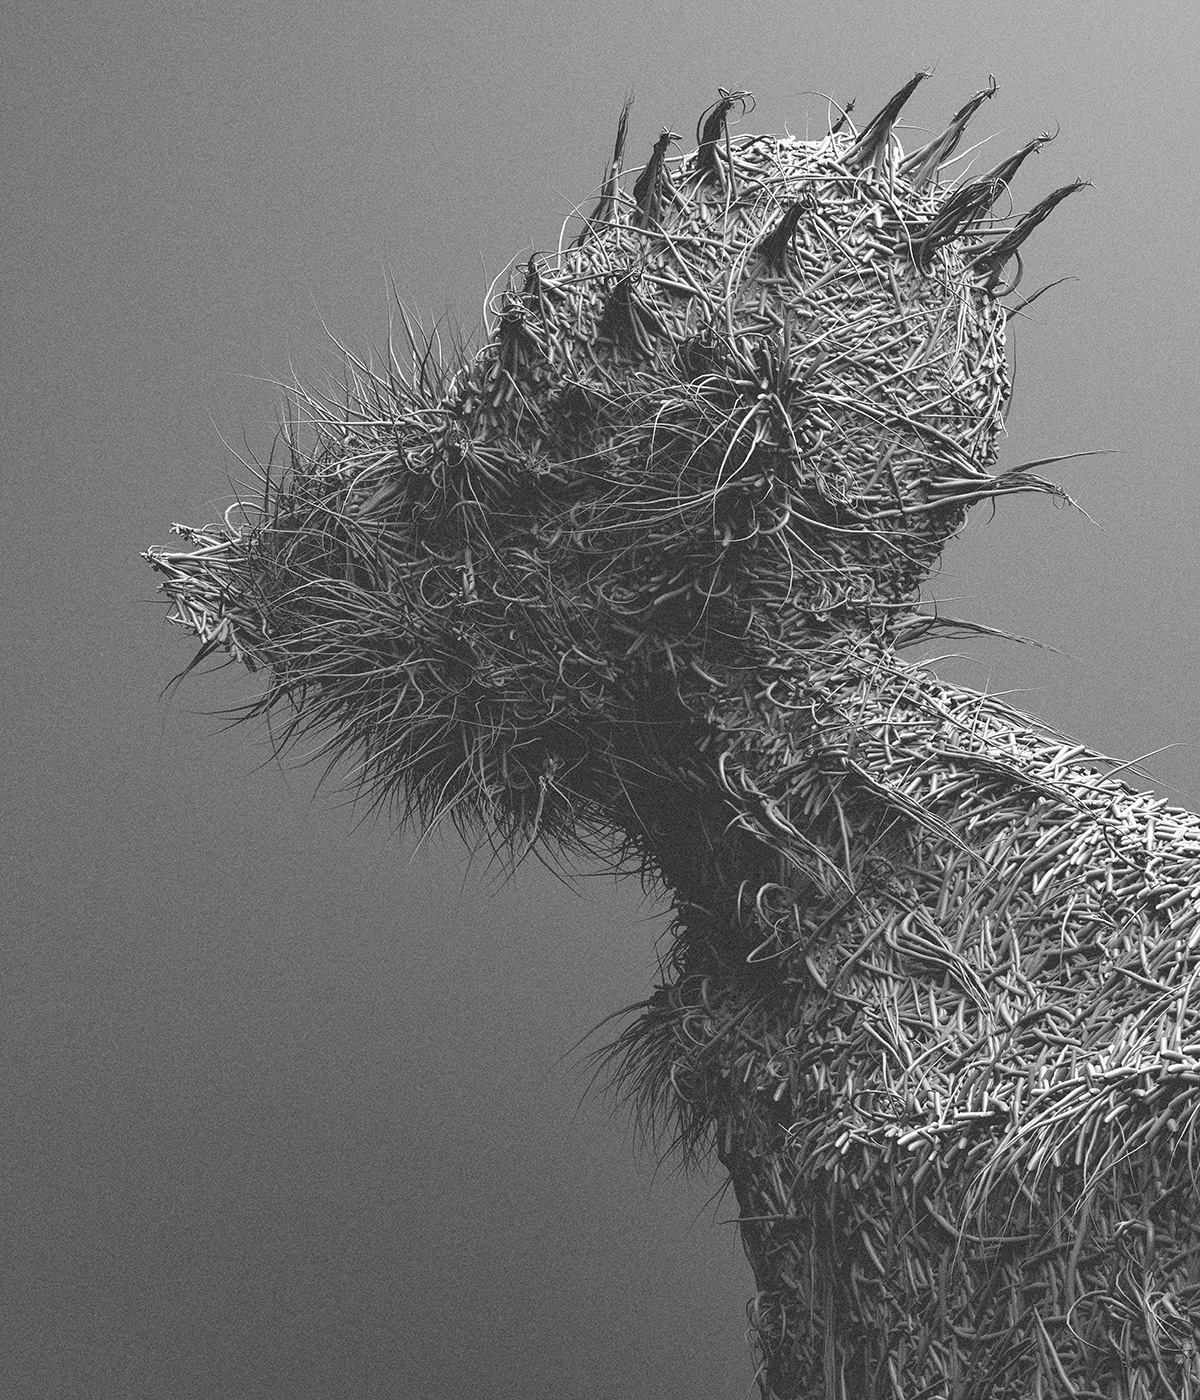 Digital art selected for the Daily Inspiration #2193